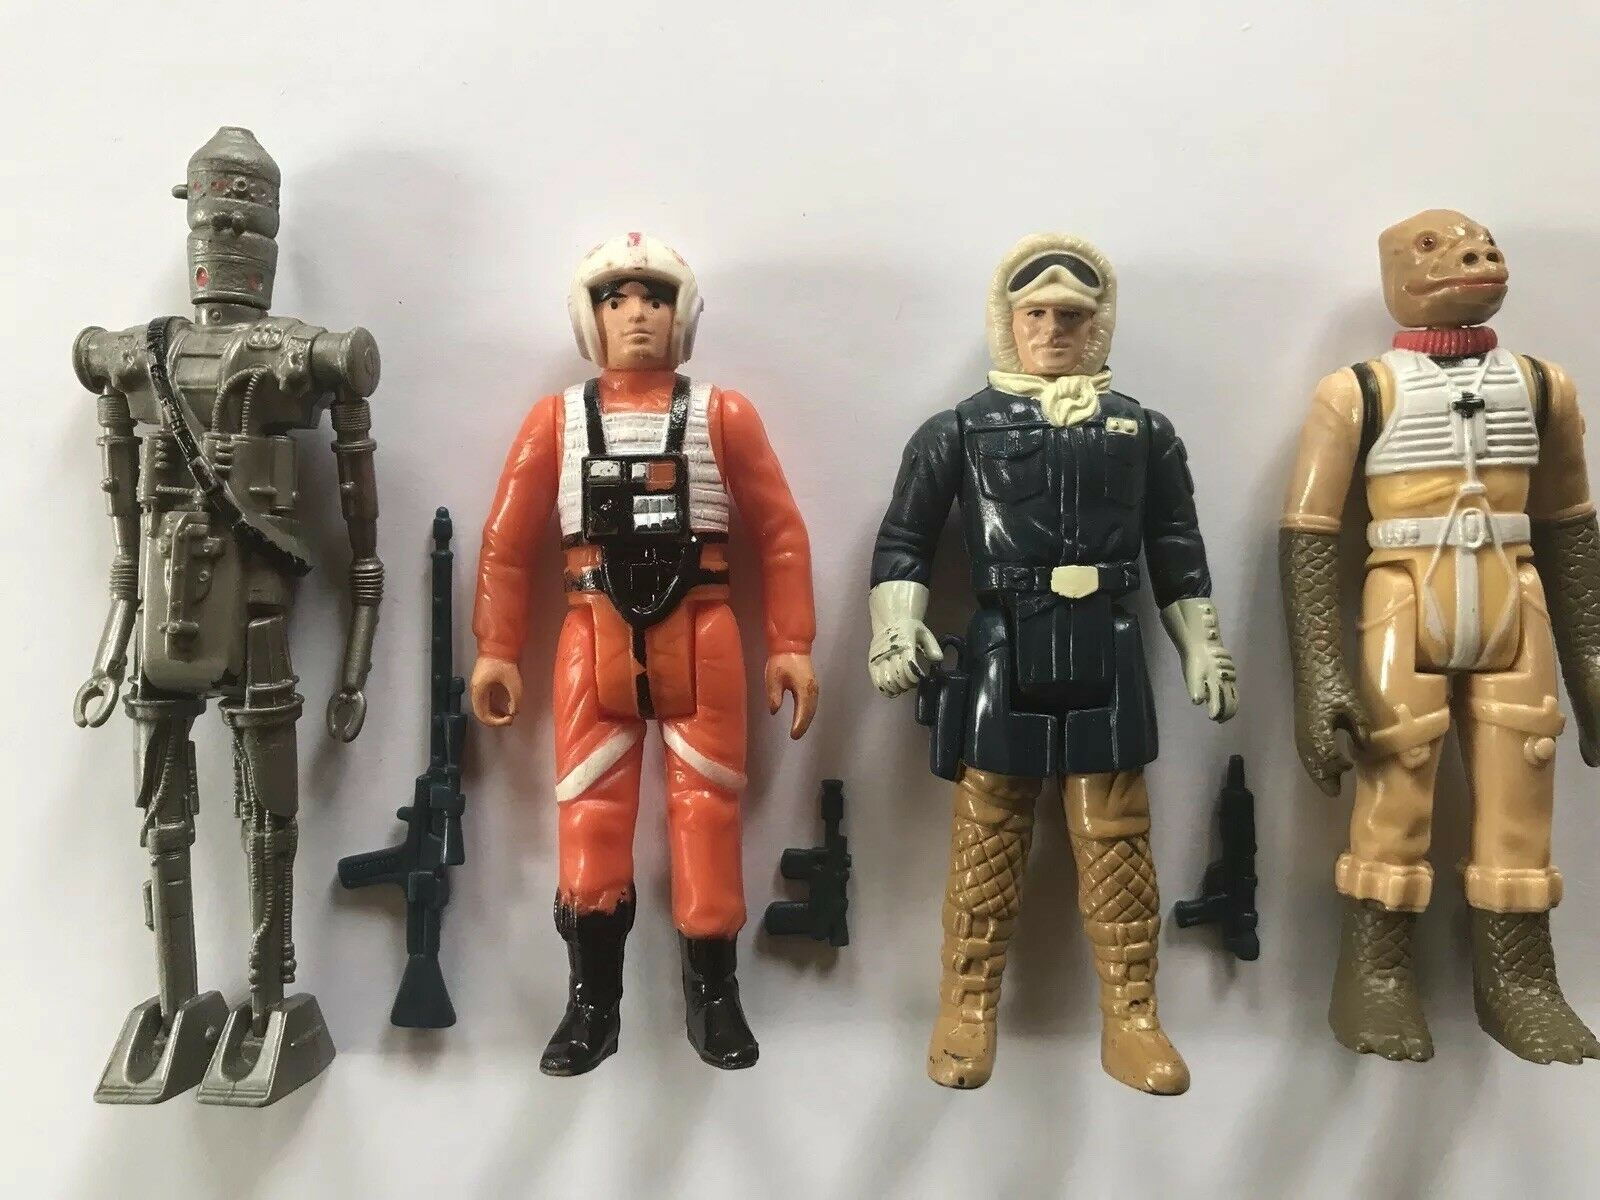 Star Wars Kenner vintage Action Figures- 1978 80 w  original weapons. Luke, Han.